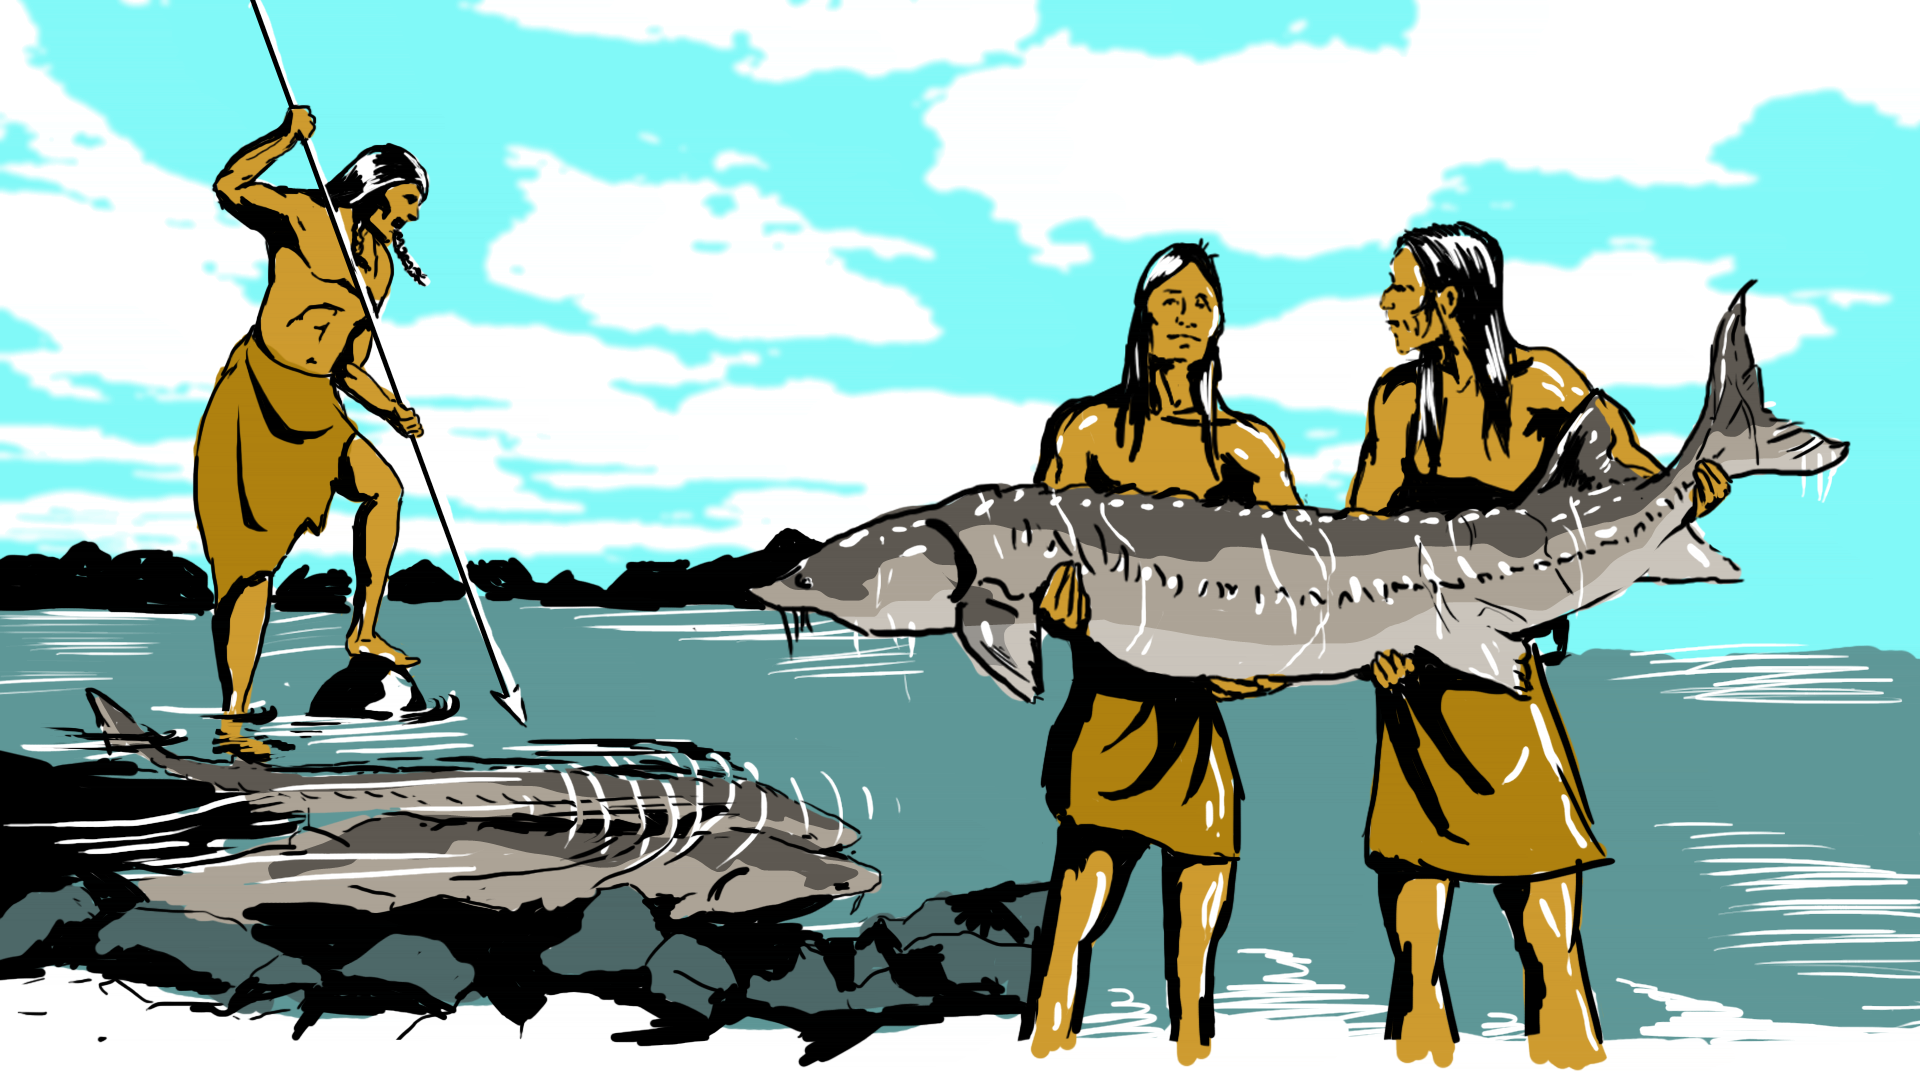 Fisherman clipart native american The Images Native Into with